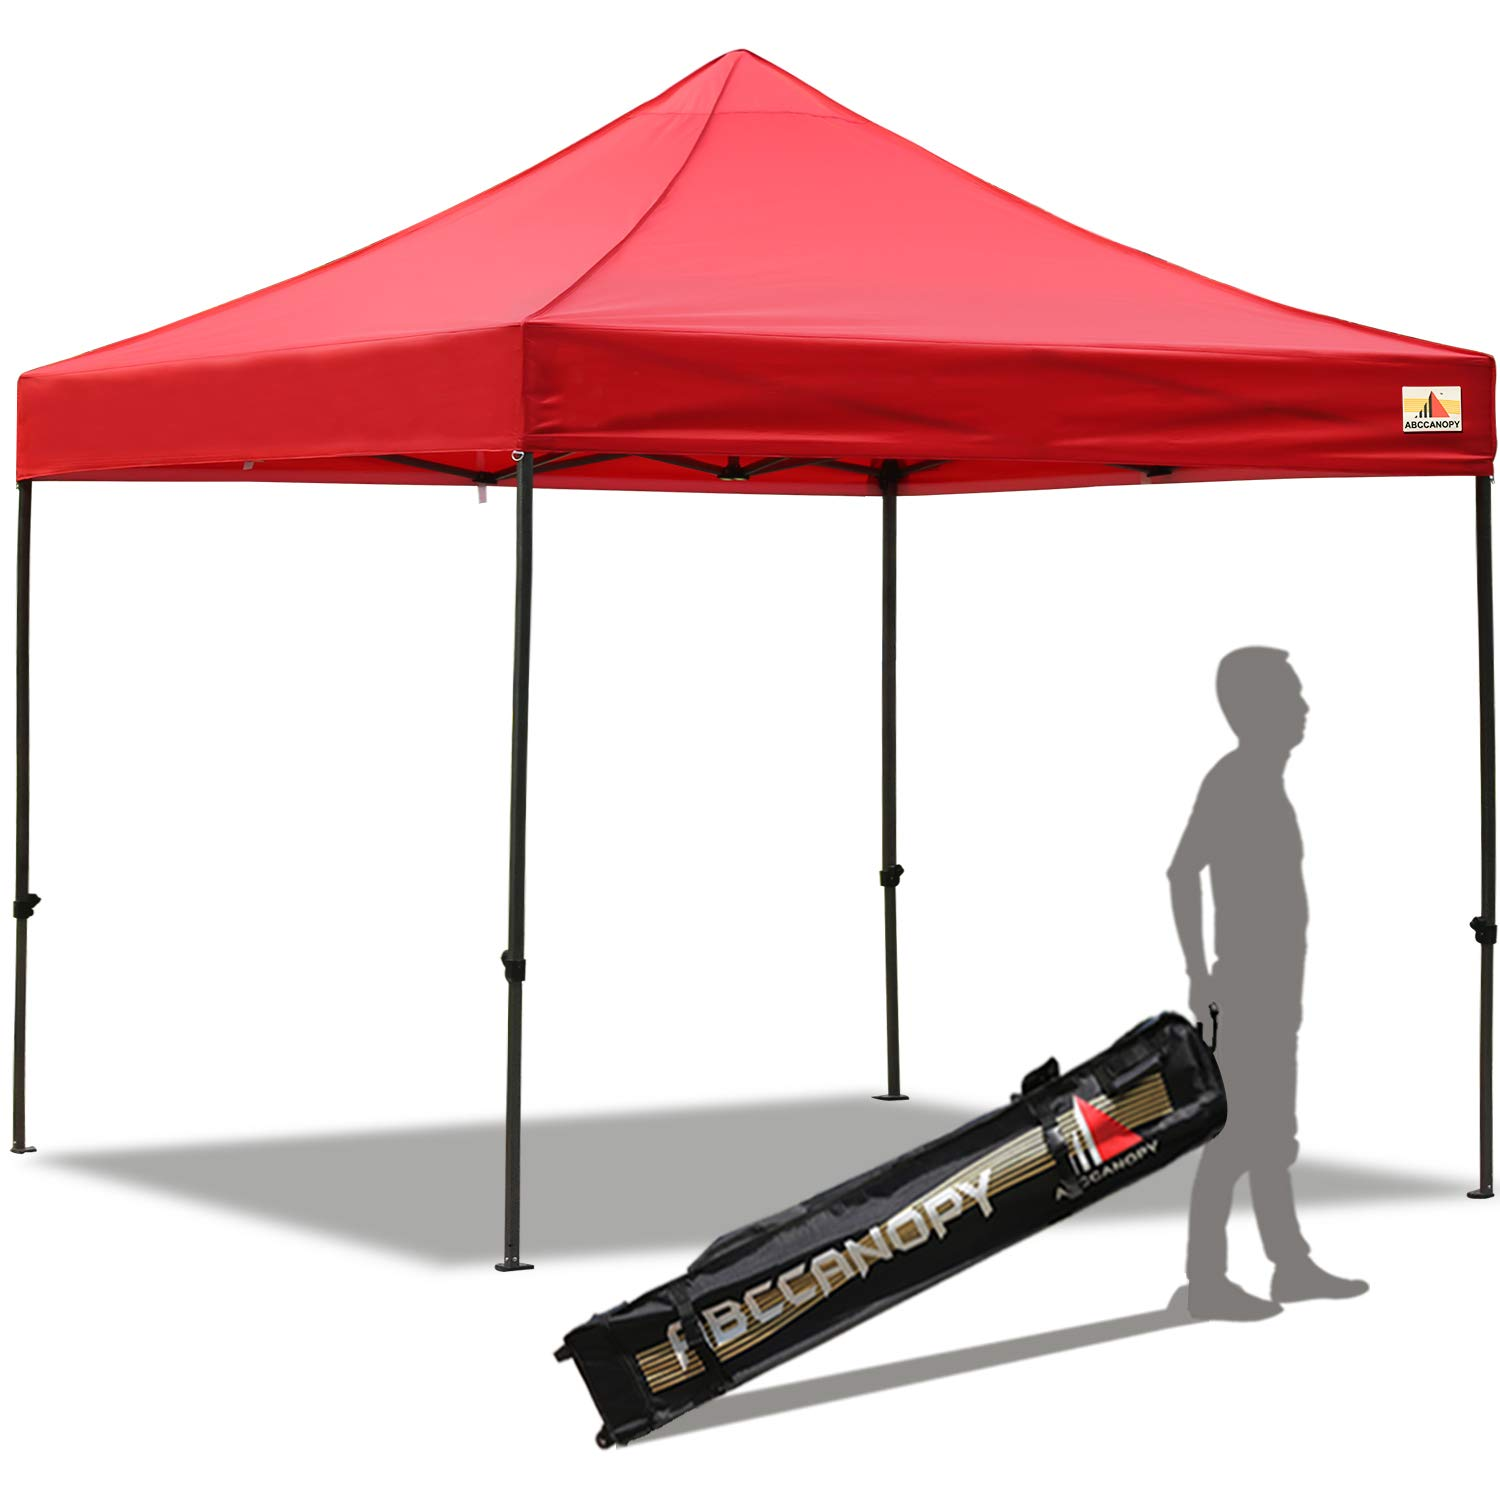 ABCCANOPY Pop up Canopy Tent Commercial Instant Shelter with Wheeled Carry Bag, 10x10 FT Red